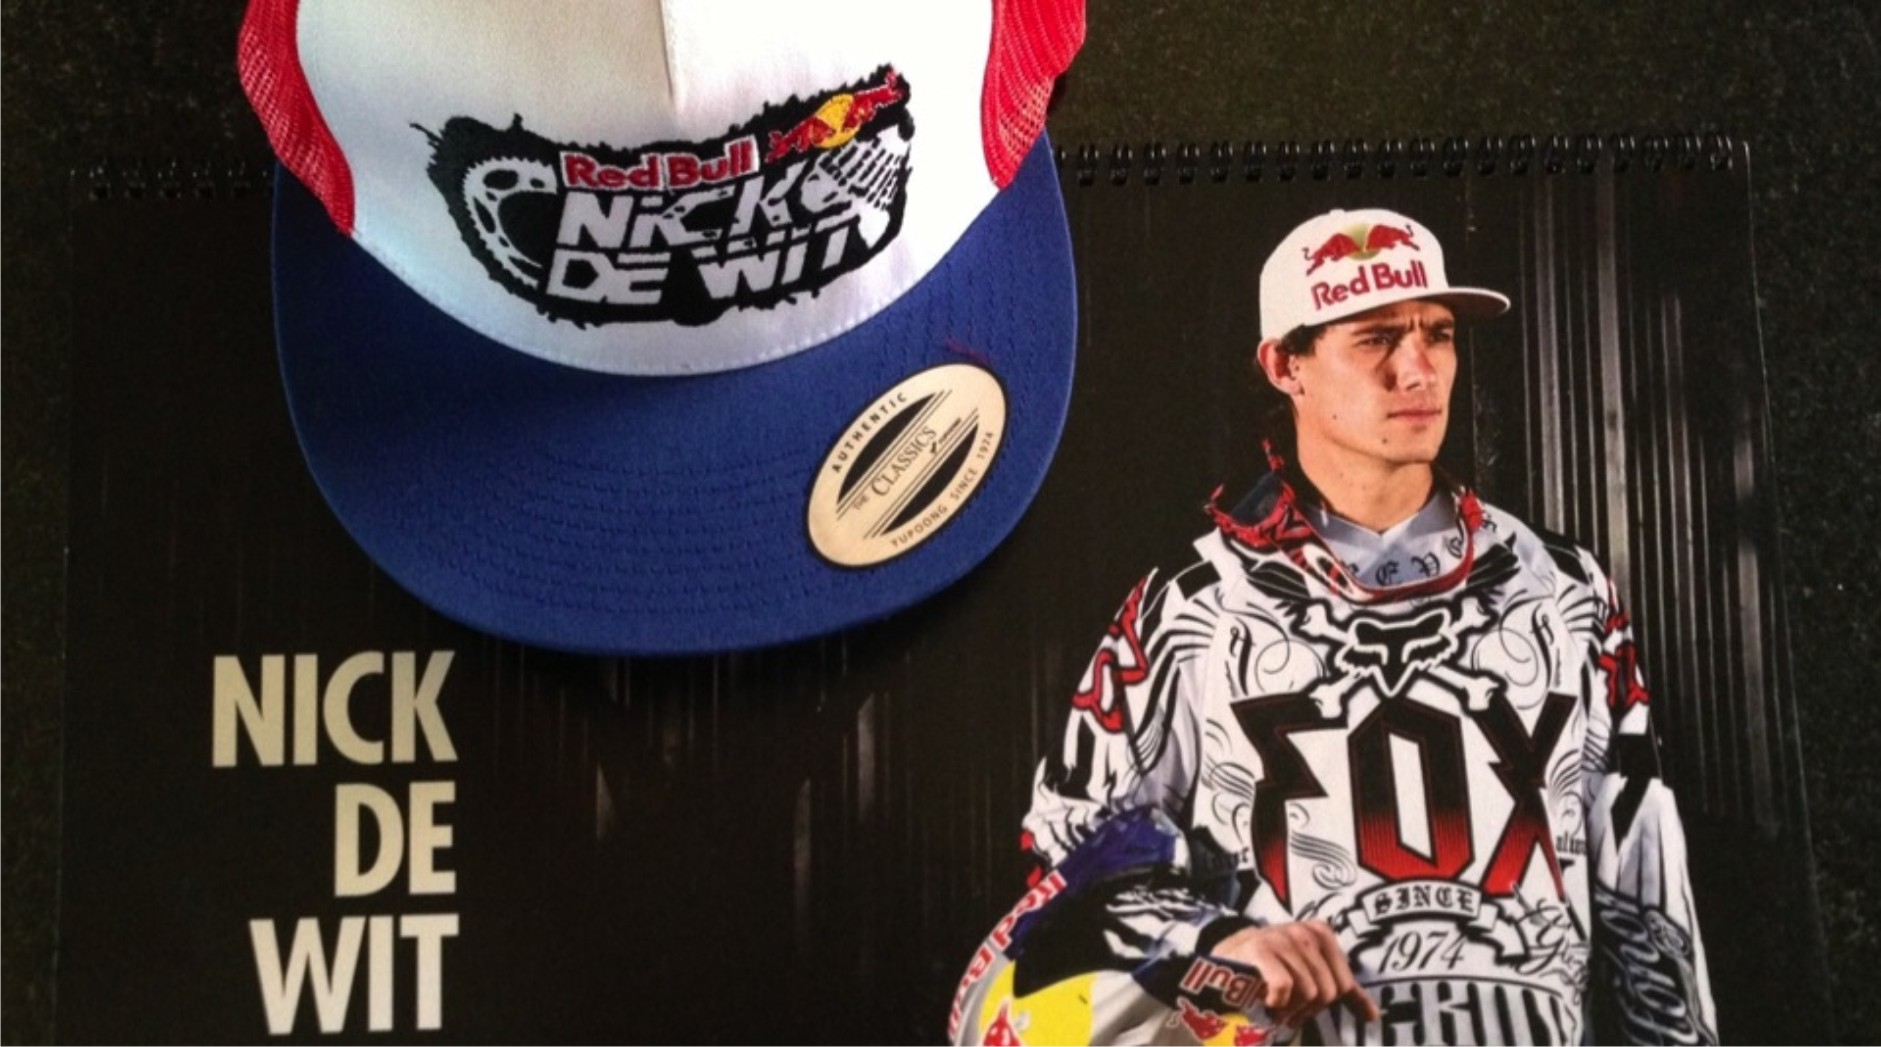 Enter our Nick de Wit freestyle motocross competition now